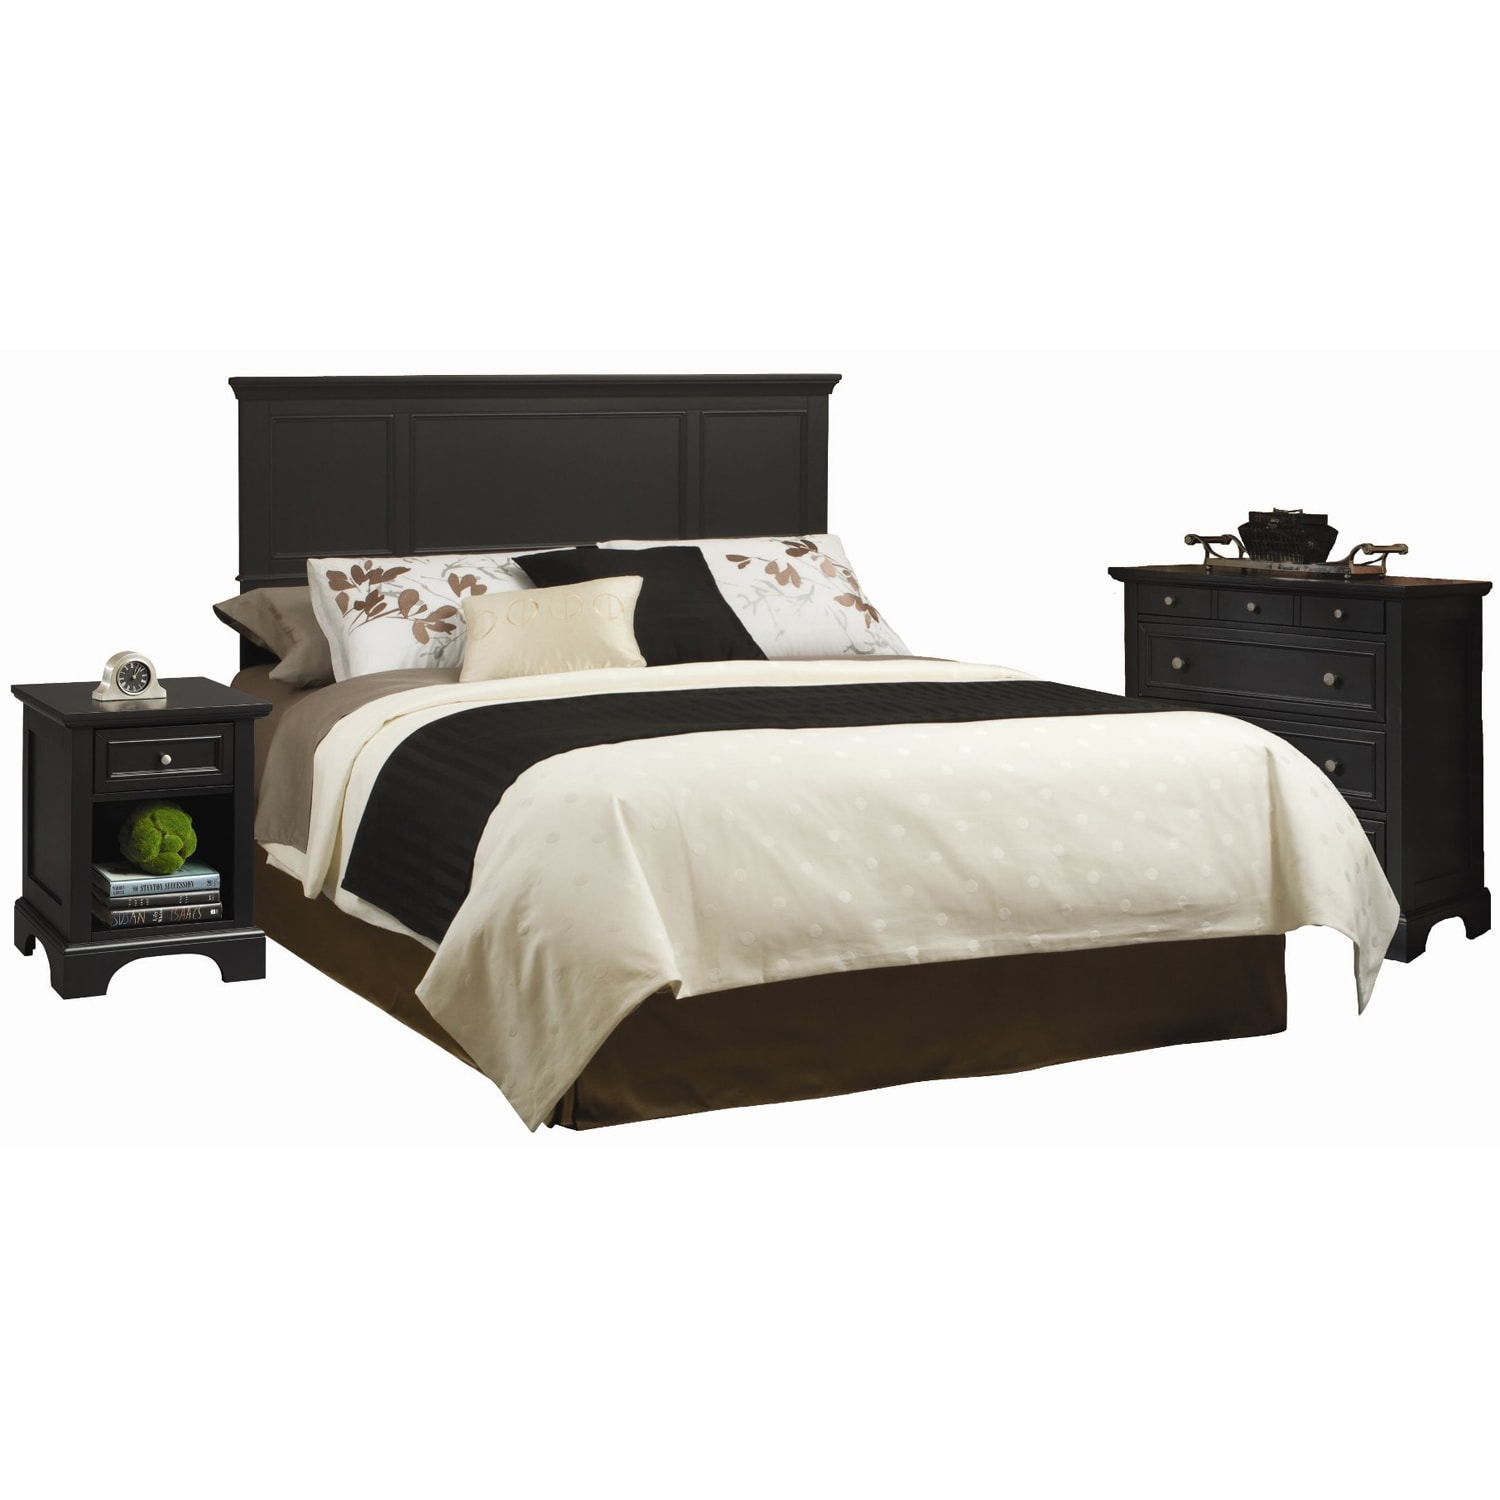 Bedford Queen/Full Headboard Night Stand and Chest Set by Home ...